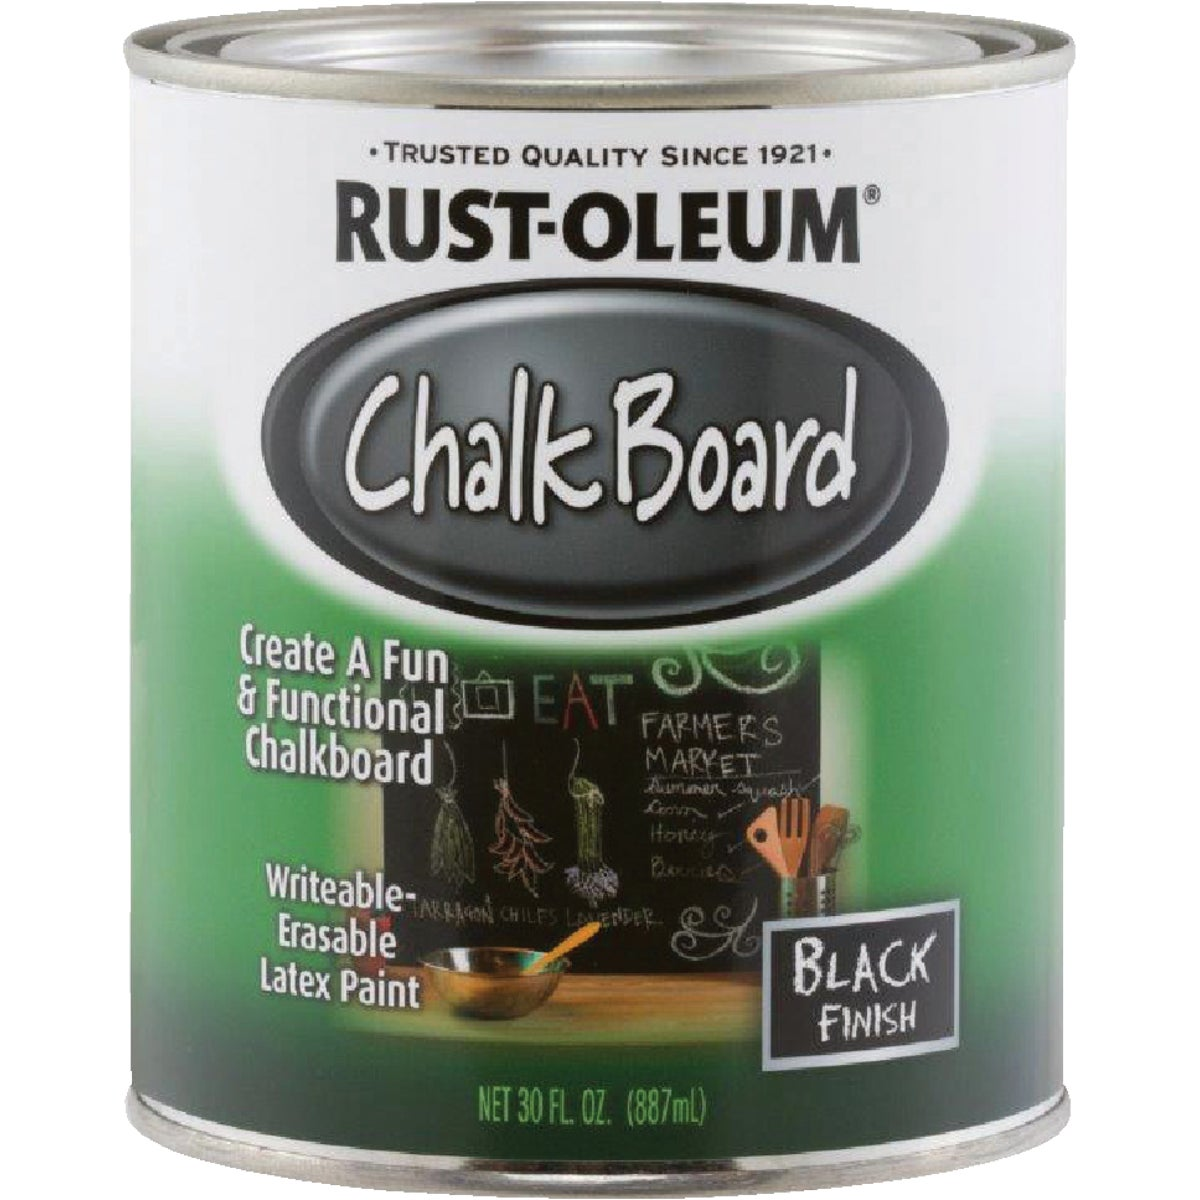 BLACK CHALKBOARD FINISH - 206540 by Rustoleum